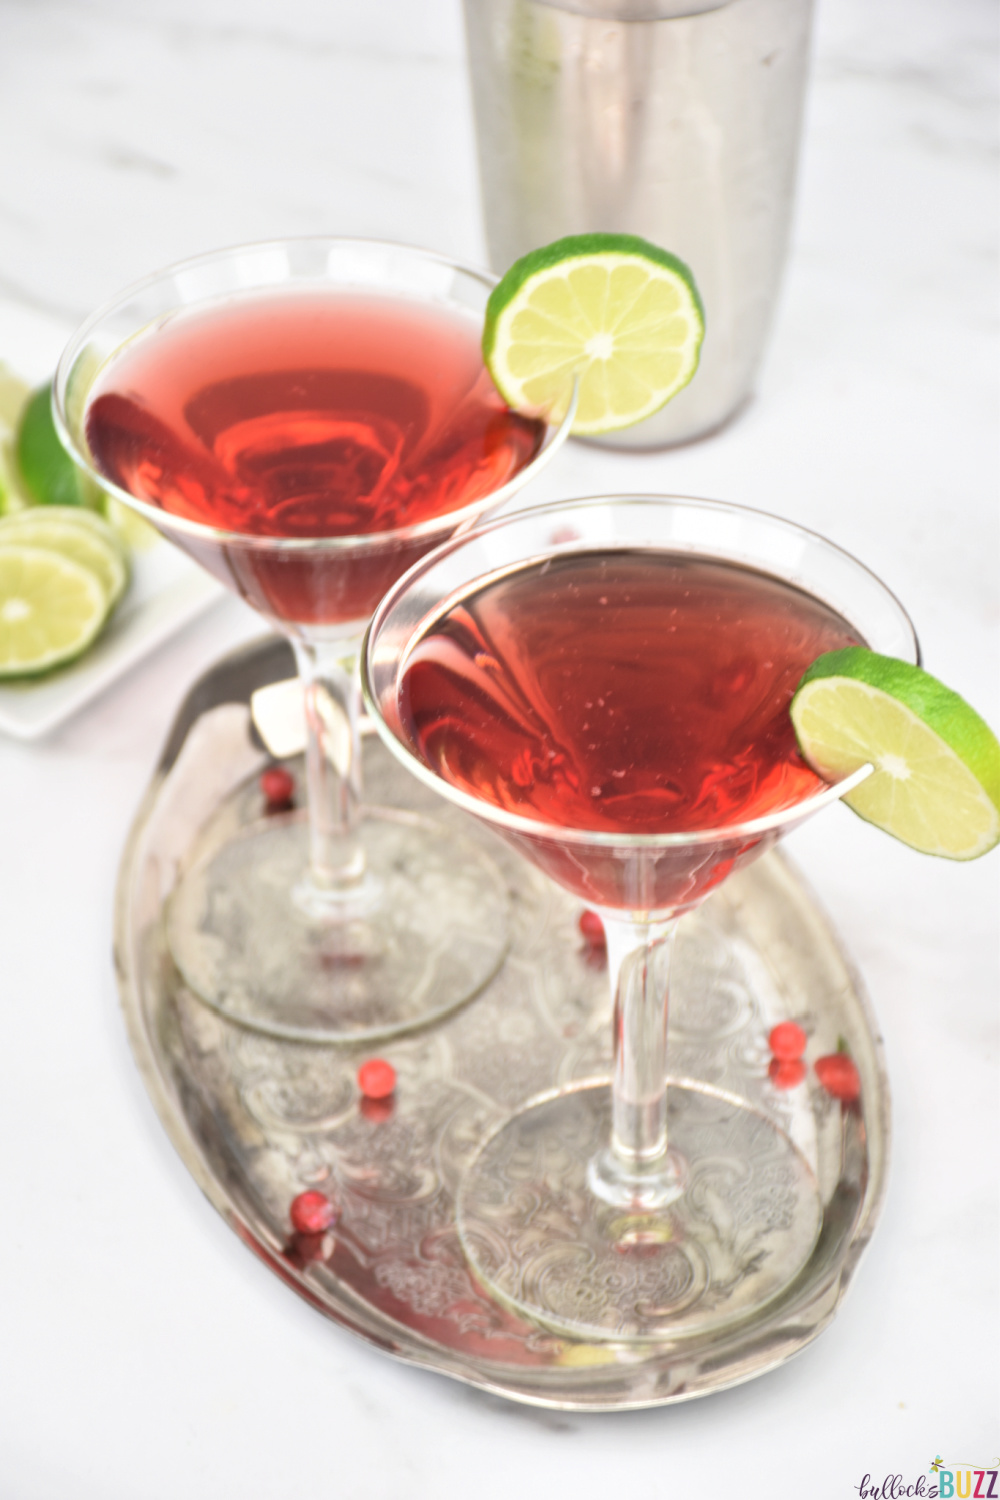 The Scarlett O'Hara cocktail is a refreshing summer sipper made with three simple ingredients: Southern Comfort, cranberry juice and lime. #cocktails #recipes #cocktailrecipes